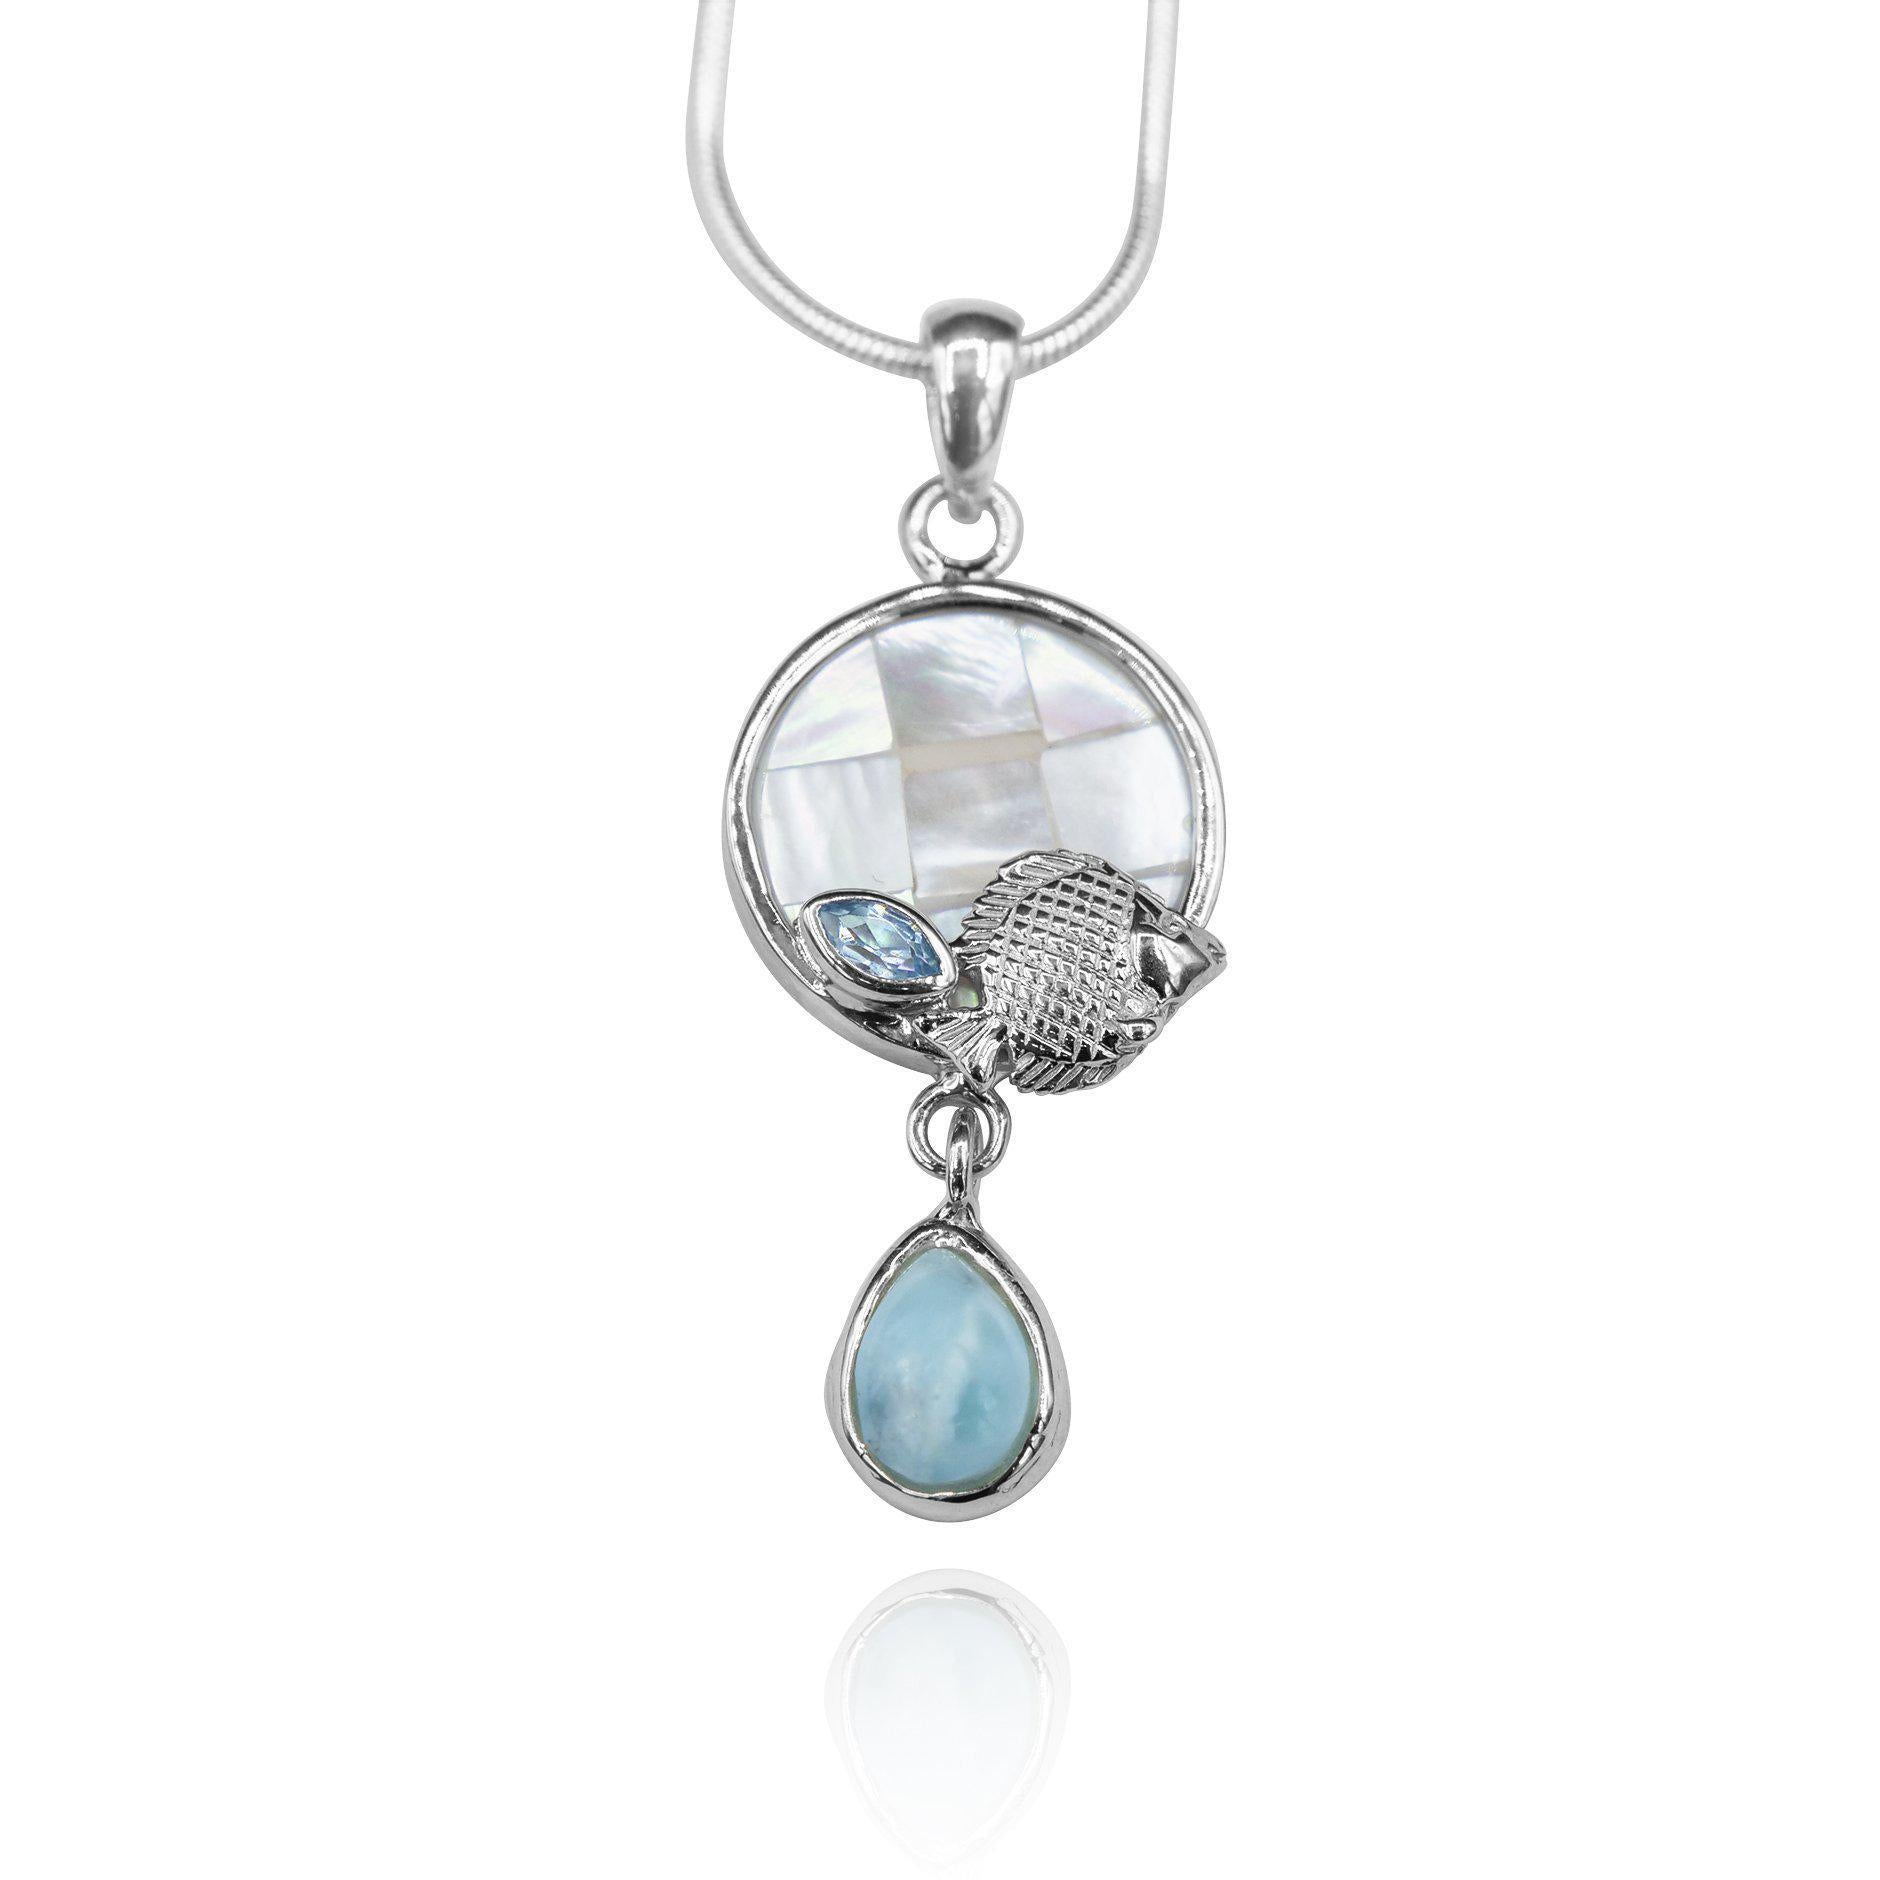 Fish Pendant Necklace with Larimar Stone, Blue Topaz and Mother of Pearl Mosaic